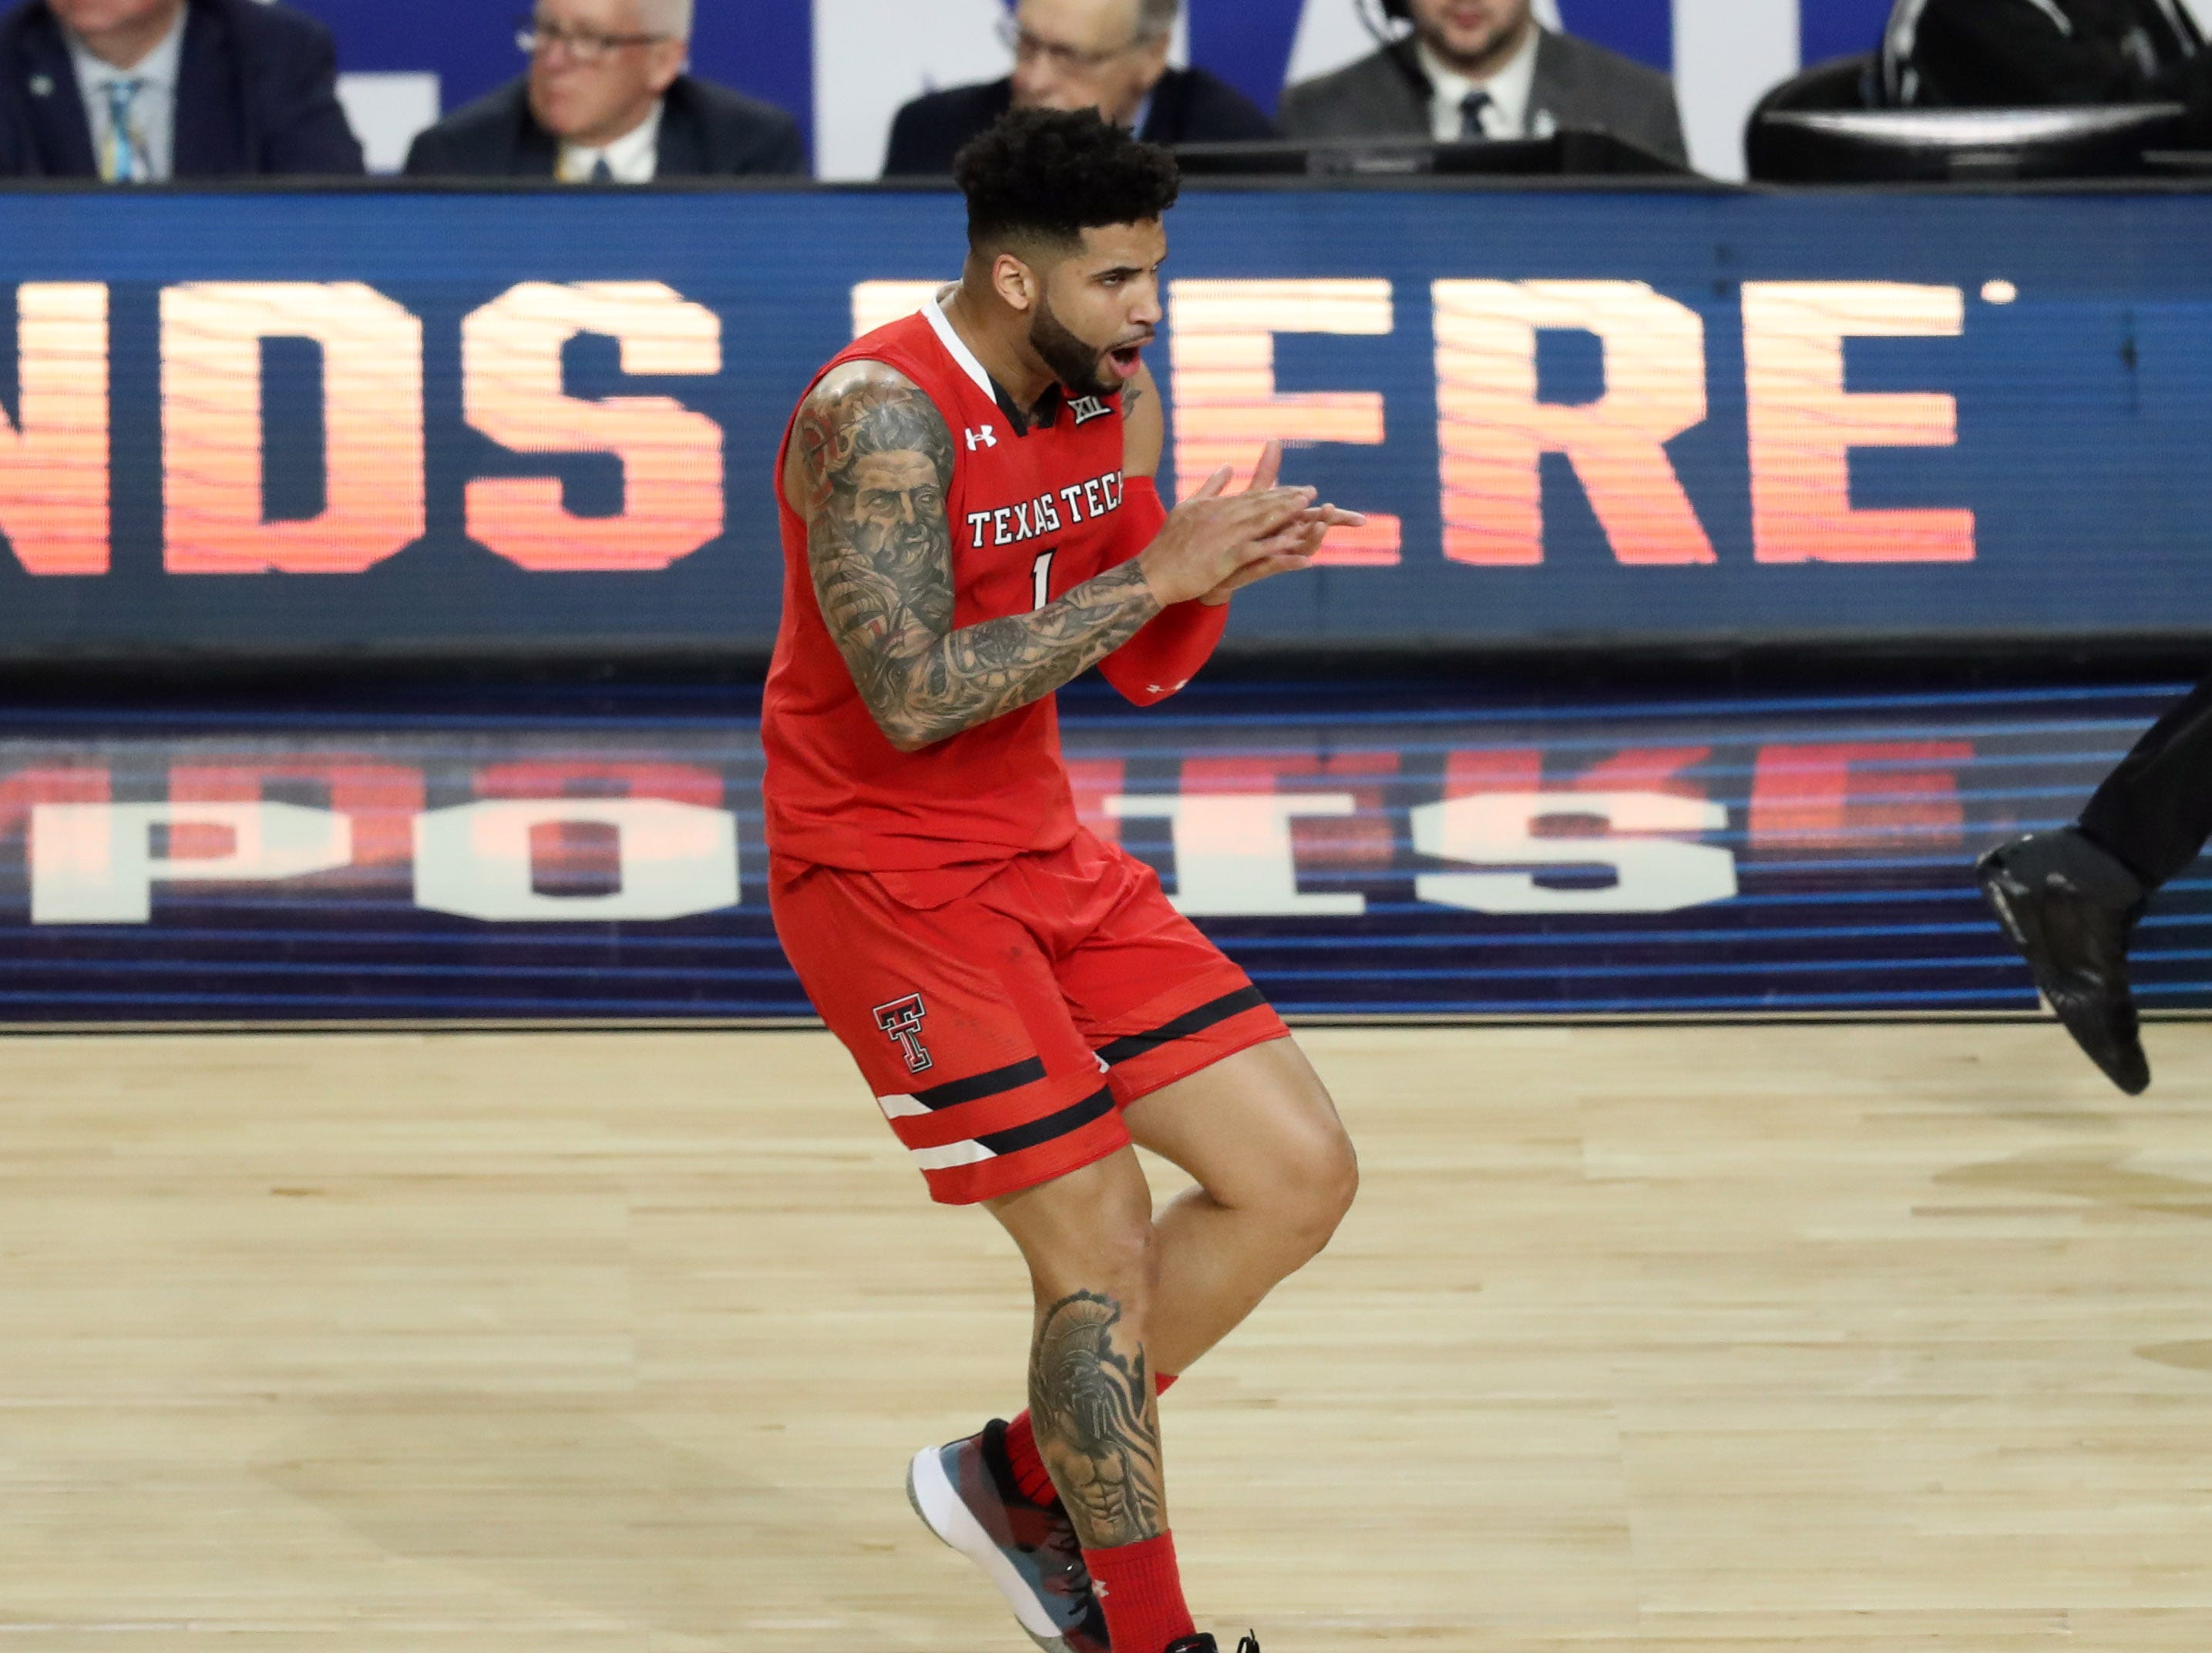 Apr 8, 2019; Minneapolis, MN, USA; Texas Tech Red Raiders guard Brandone Francis (1) celebrates after scoring during the first half against the Virginia Cavaliers in the championship game of the 2019 men's Final Four at US Bank Stadium. Mandatory Credit: Brace Hemmelgarn-USA TODAY Sports